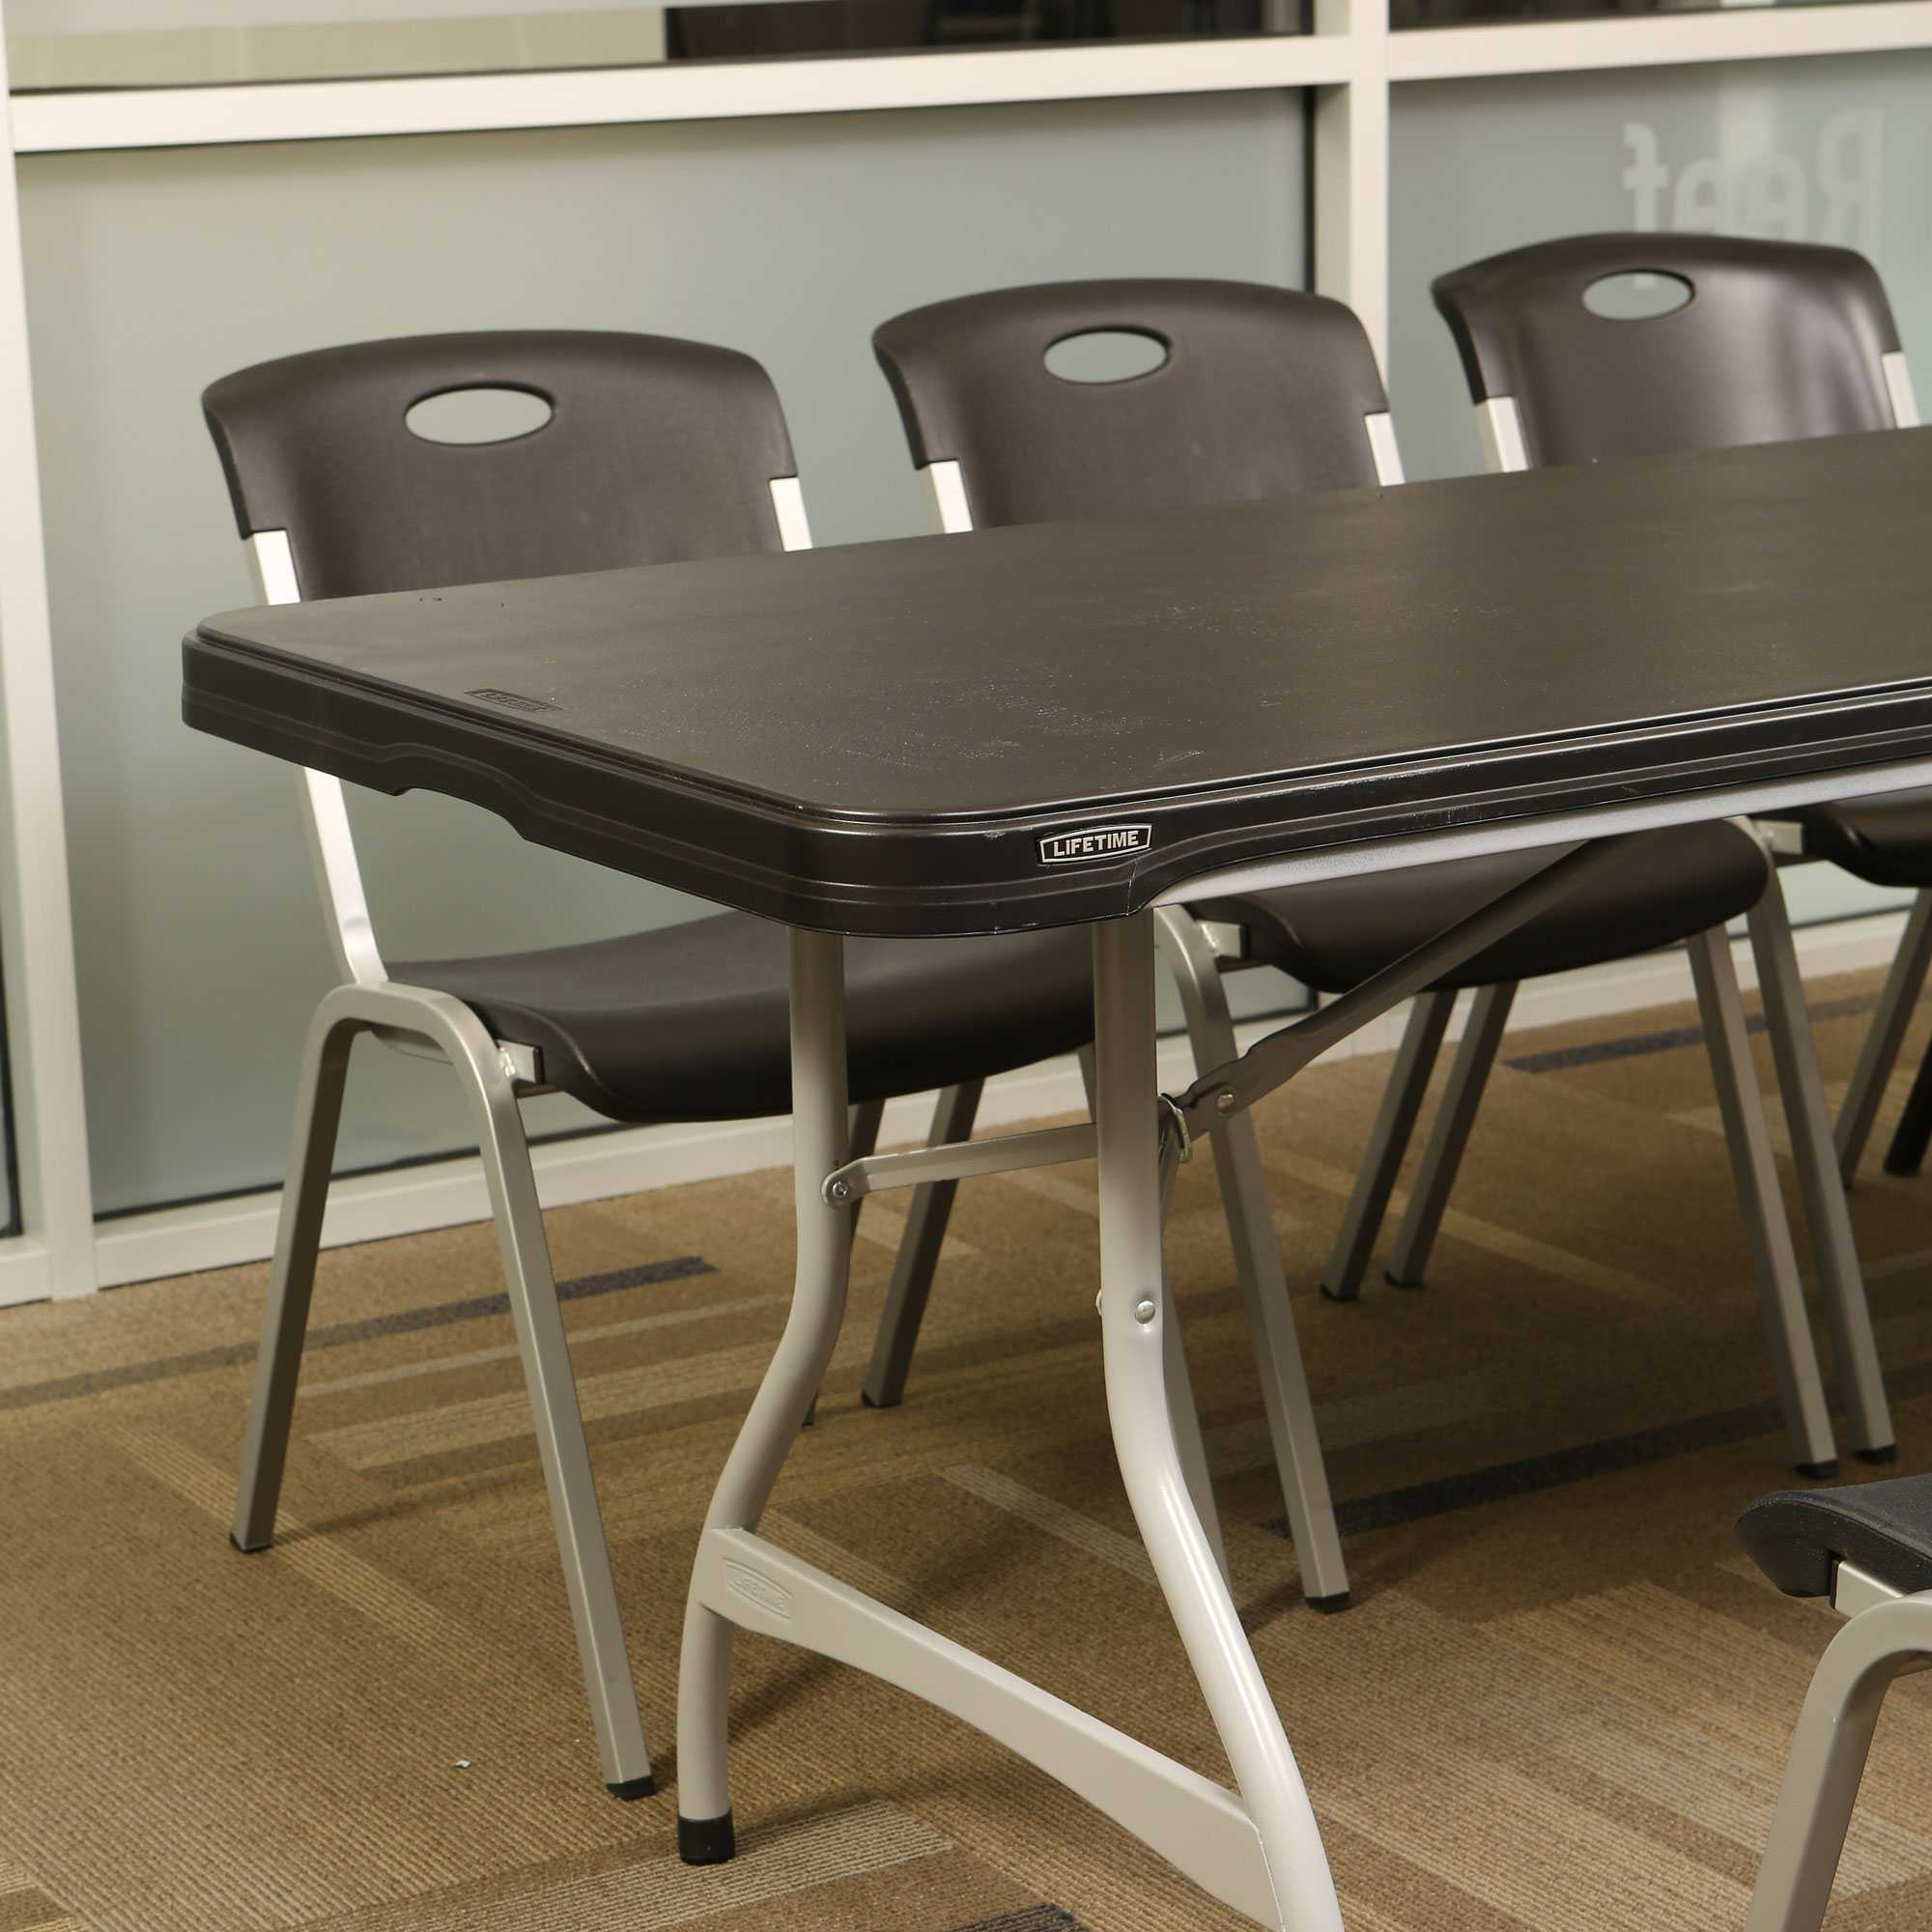 Lifetime 880462 Black 8 Table 27Pack on Sale with Free